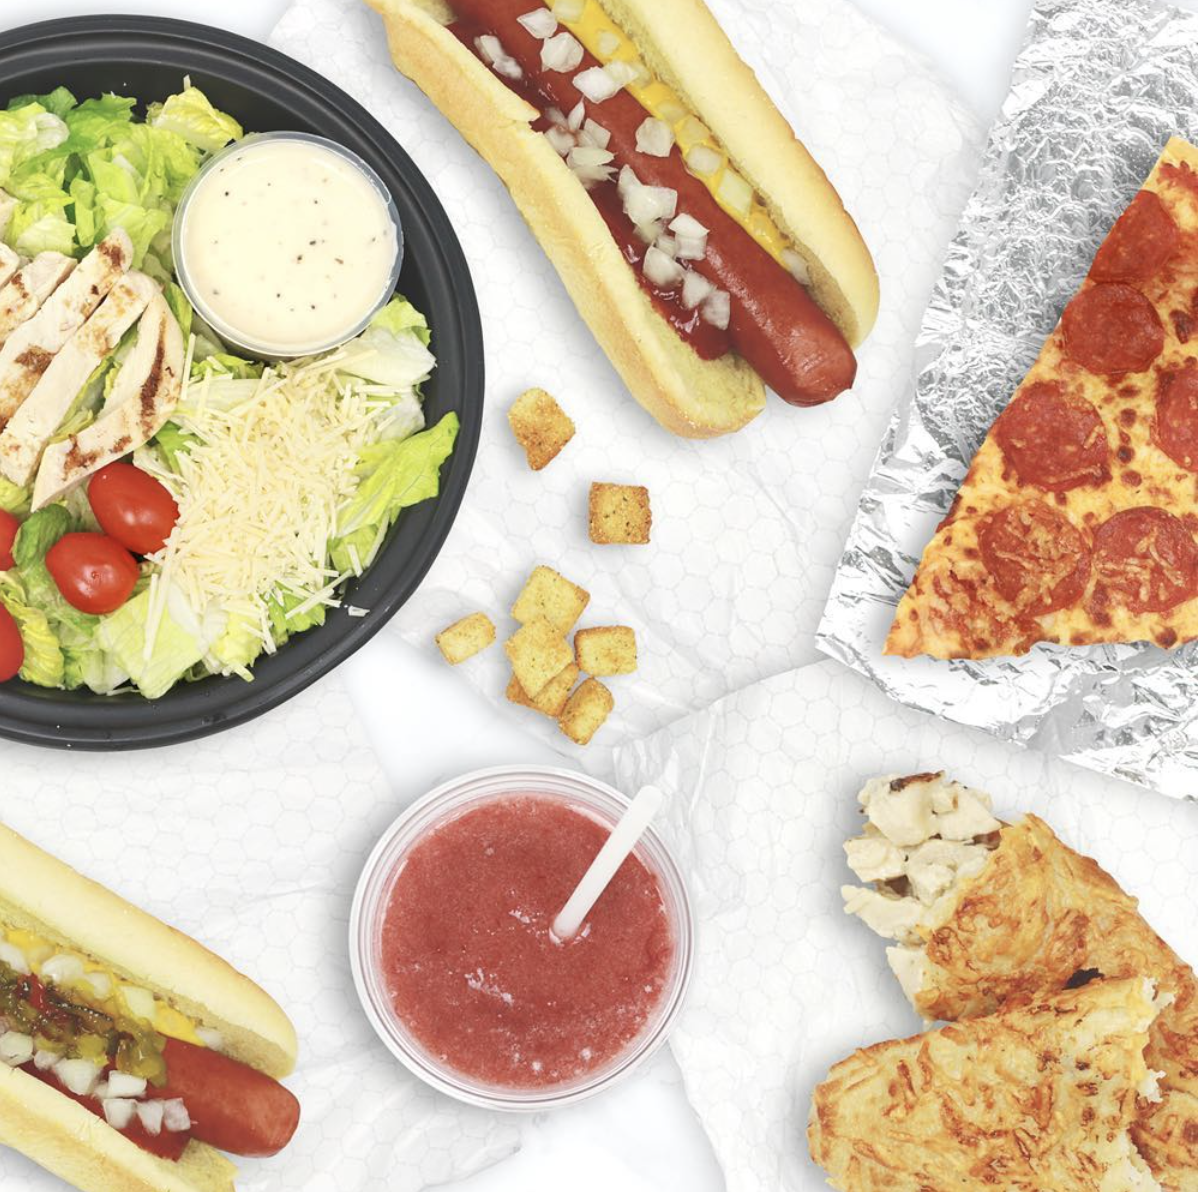 The 14 Best Costco Food Court Menu Items, Ranked